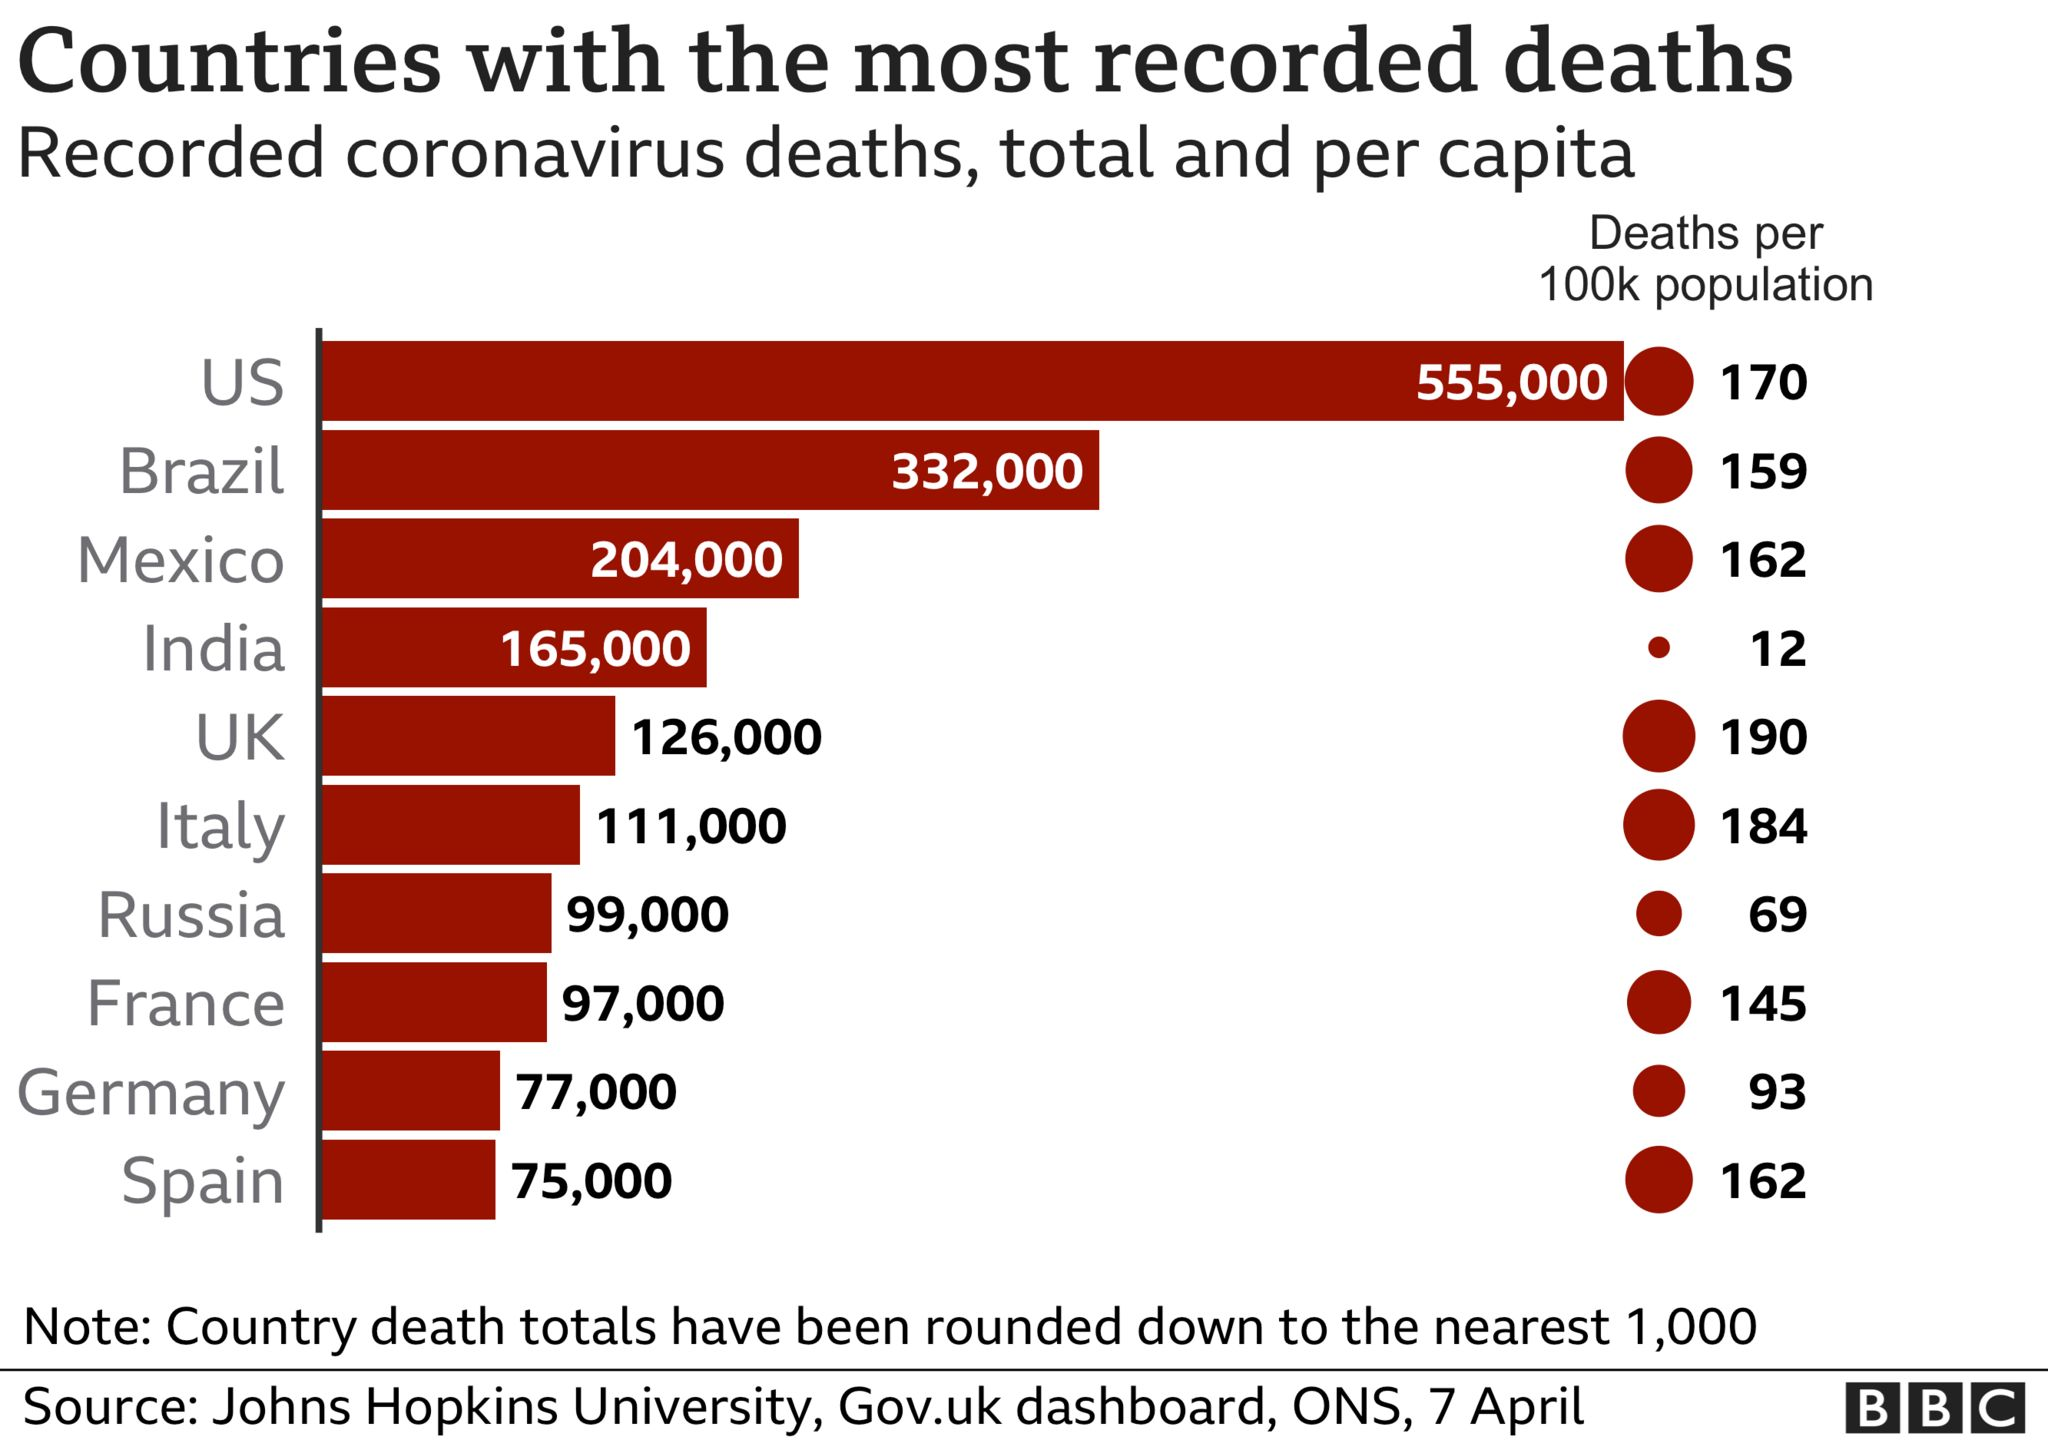 Image shows the countries with the most recorded deaths